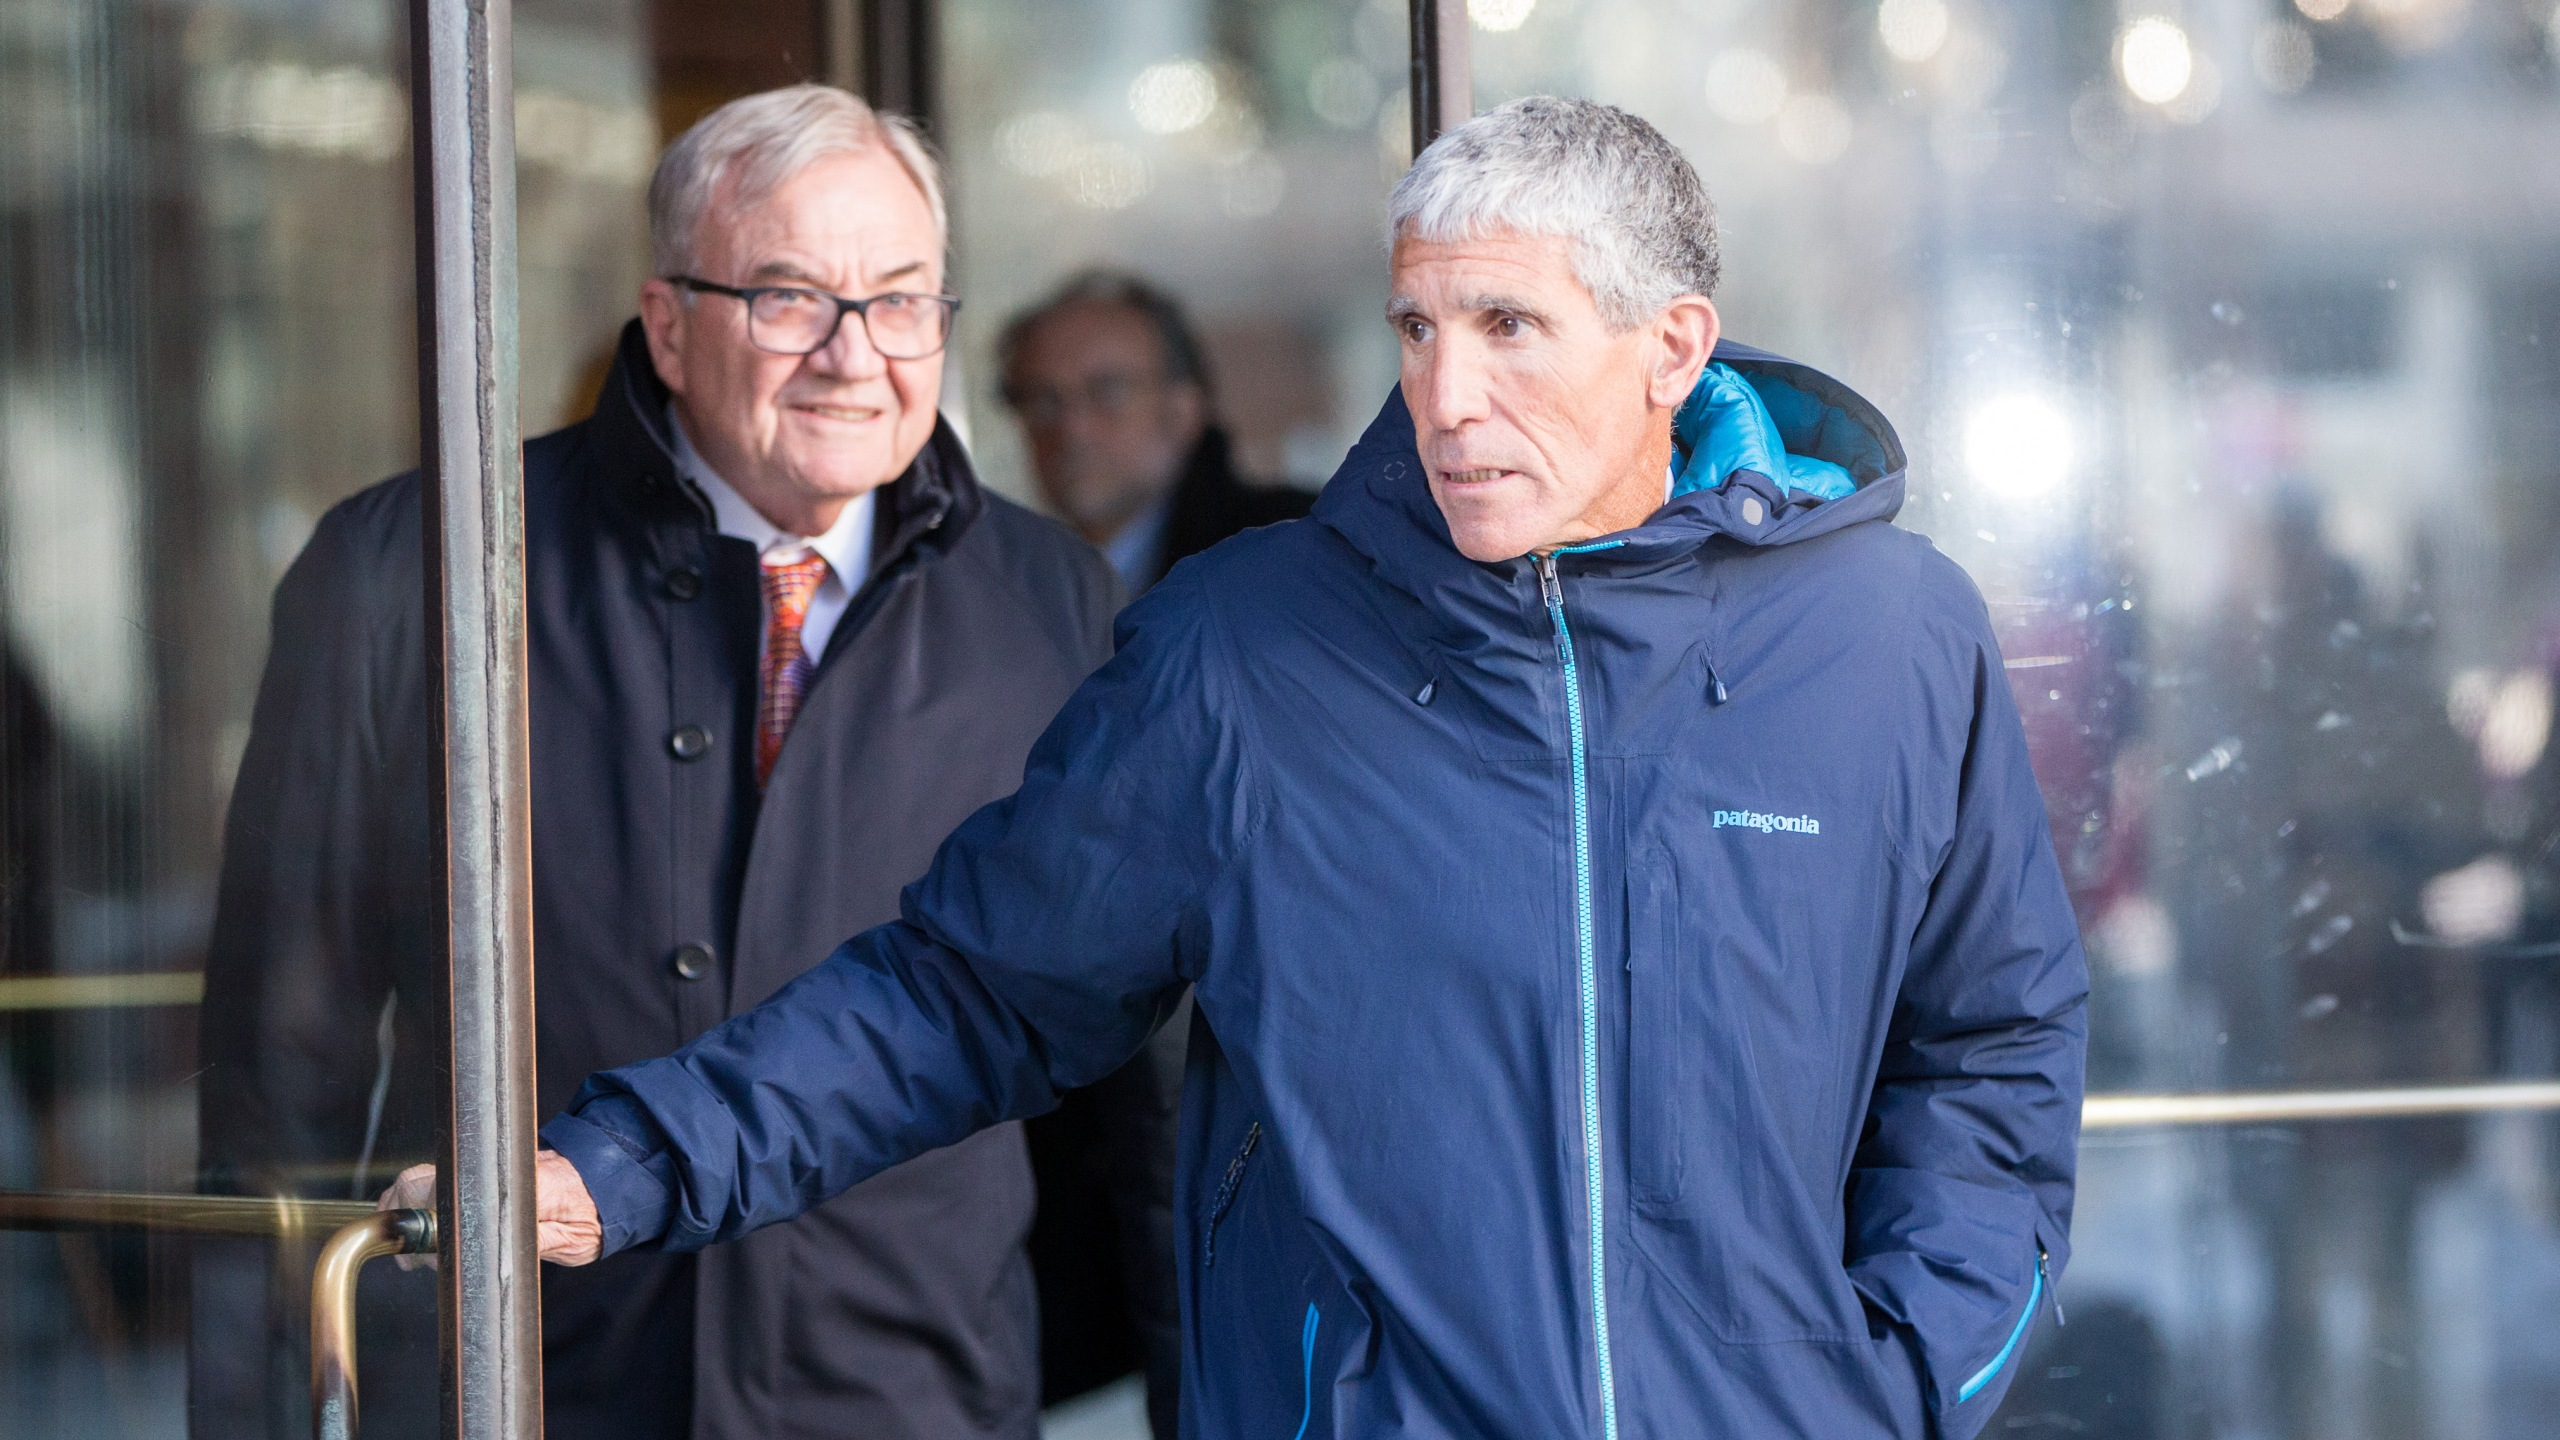 """William """"Rick"""" Singer leaves Boston Federal Court after being charged with racketeering conspiracy, money laundering conspiracy, conspiracy to defraud the United States, and obstruction of justice on March 12, 2019 in Boston, Mass. (Credit: Scott Eisen/Getty Images)"""